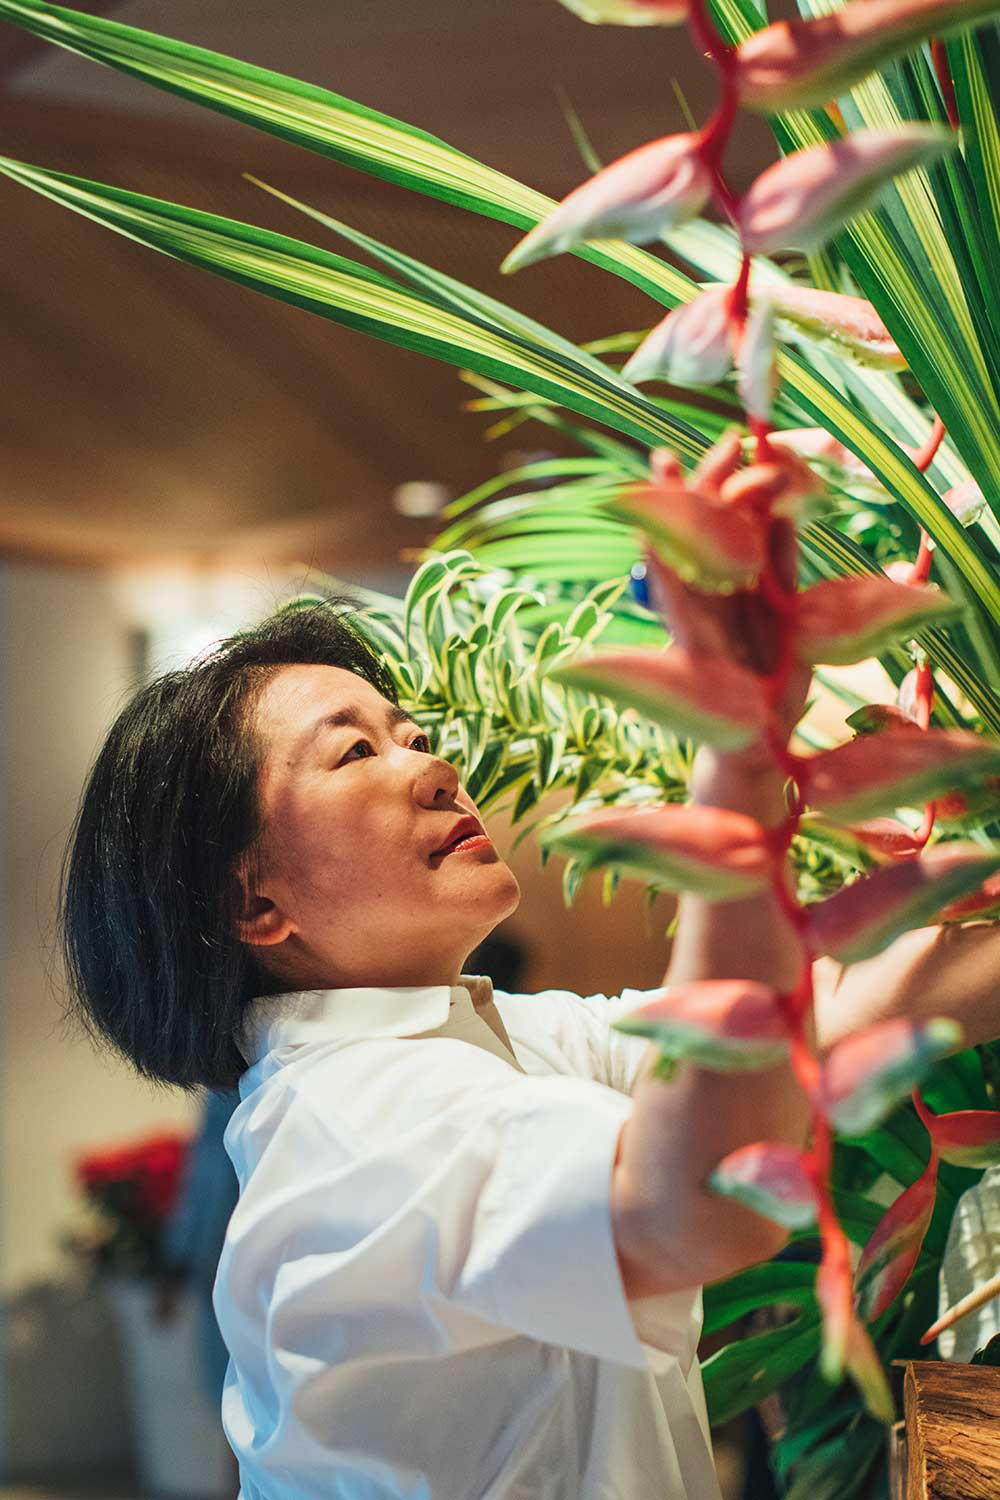 Ikebana master Hiromi Sugioka, who conceived the overall sculpture.